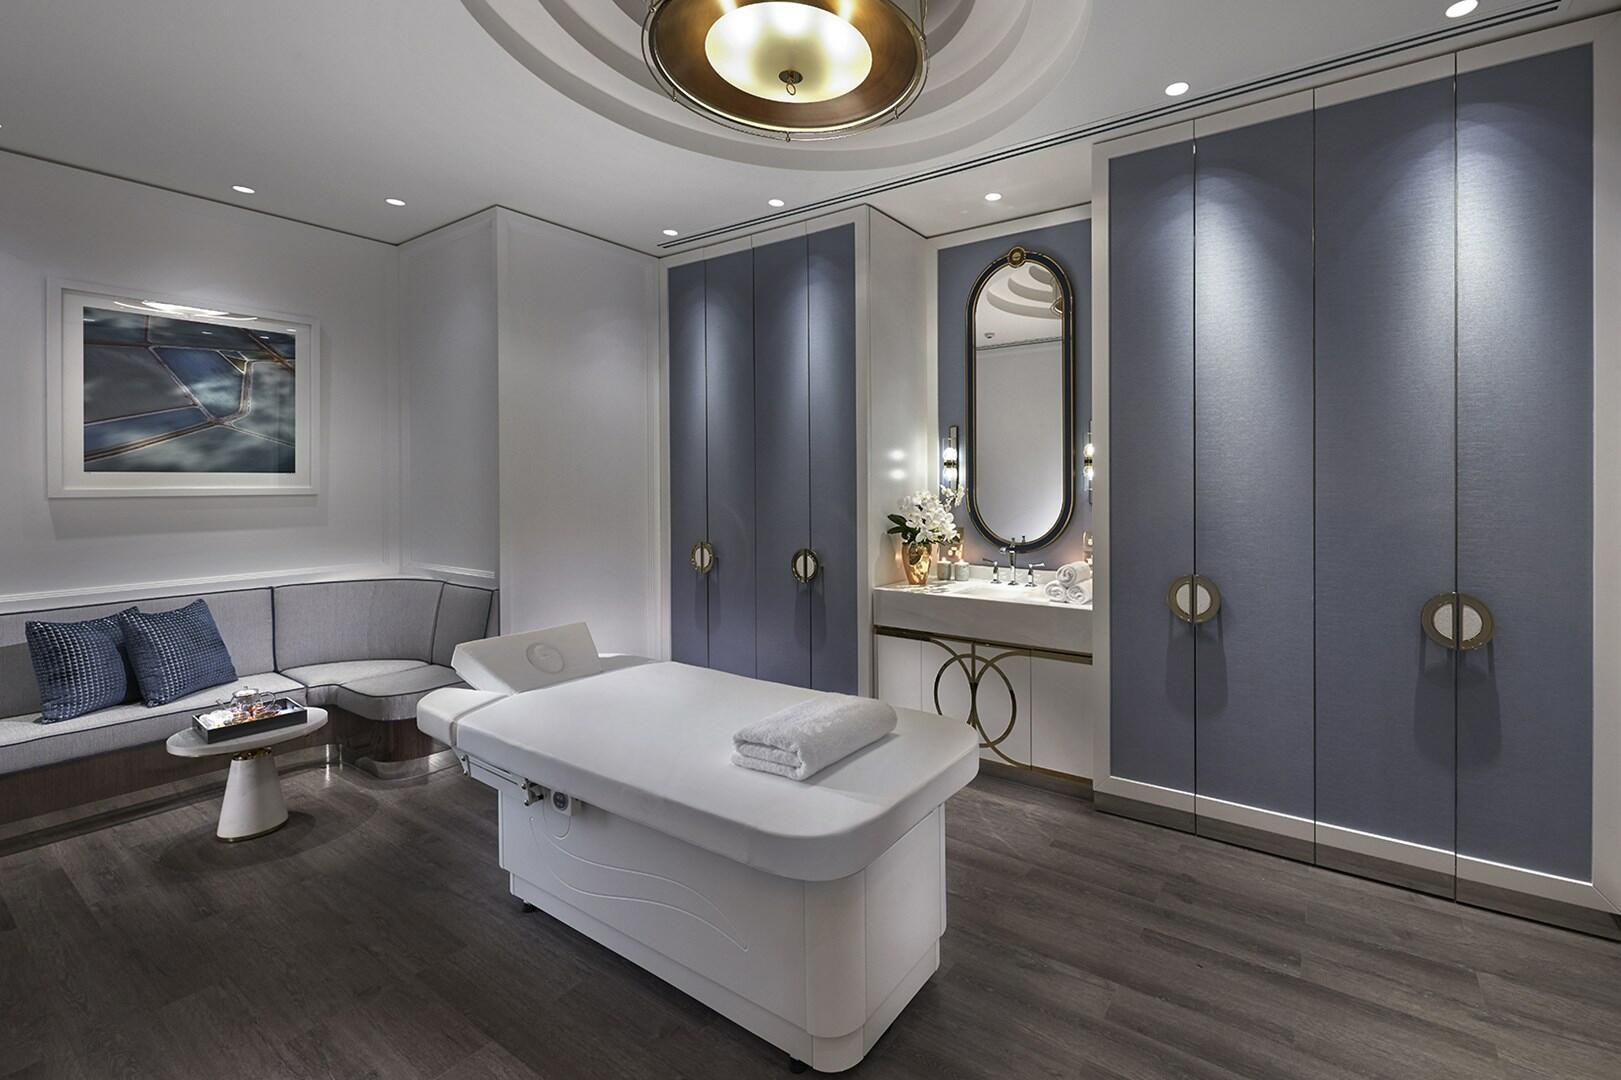 Spa facilities for the customers at Crown Hotel Perth